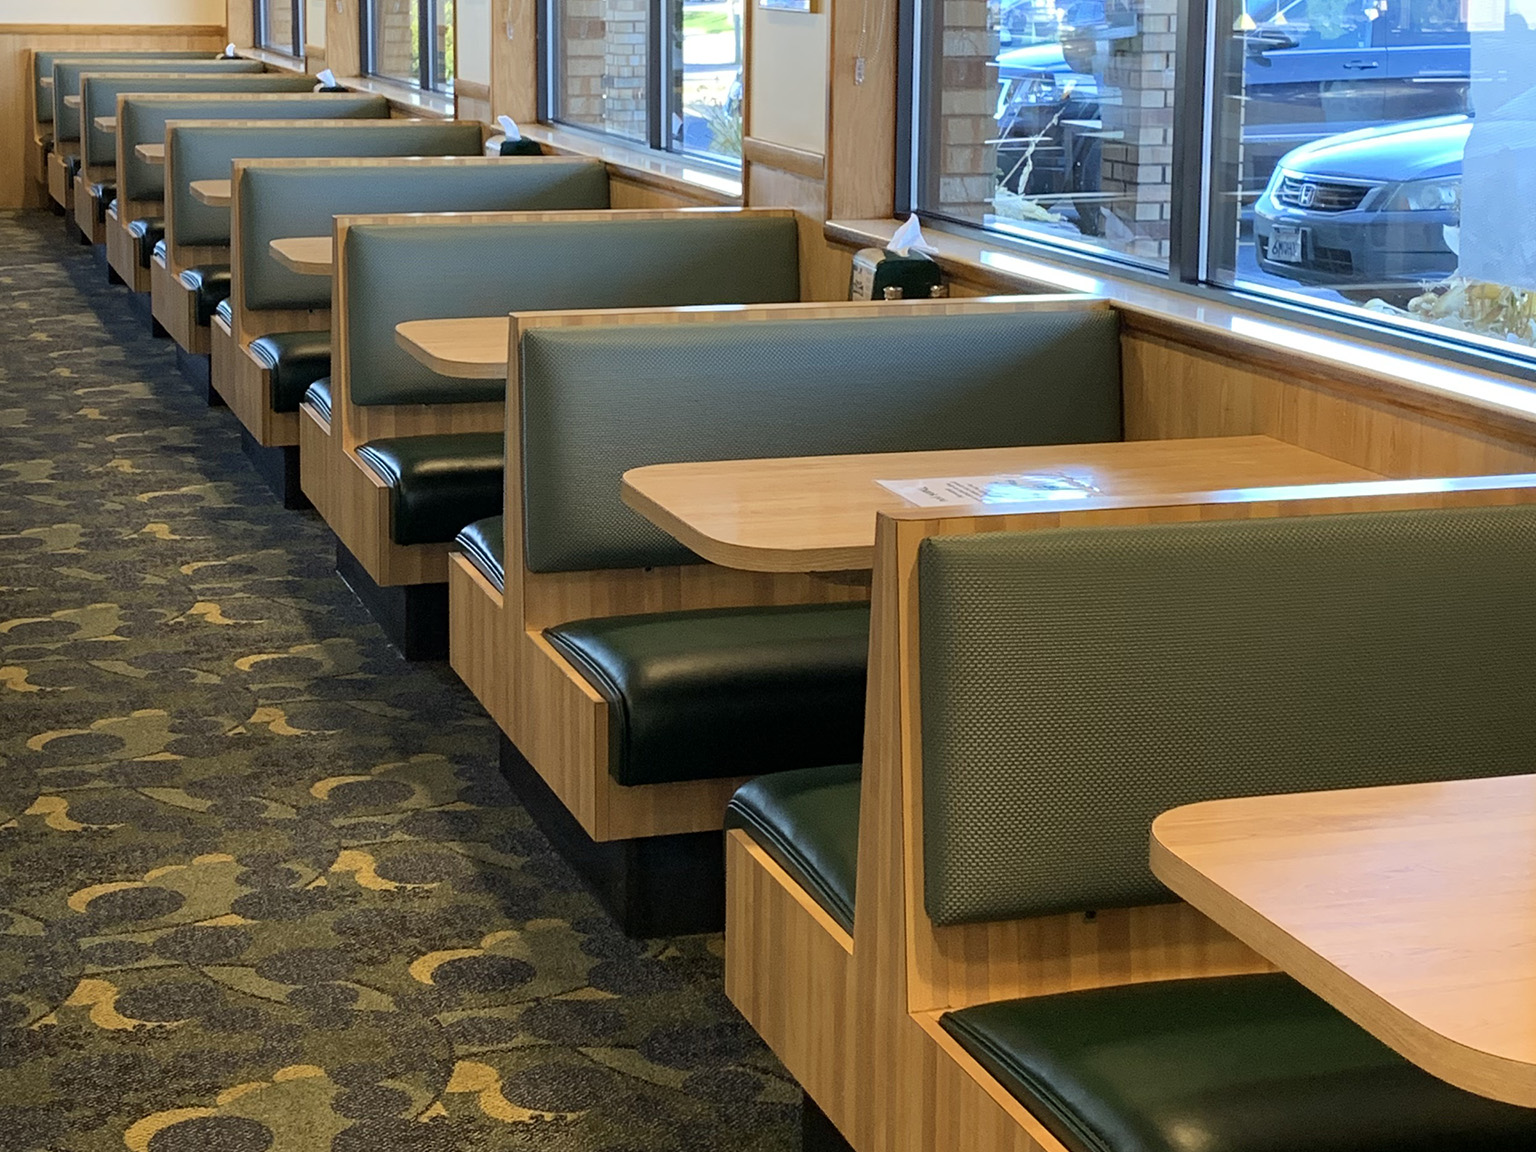 Row of restaurant booths